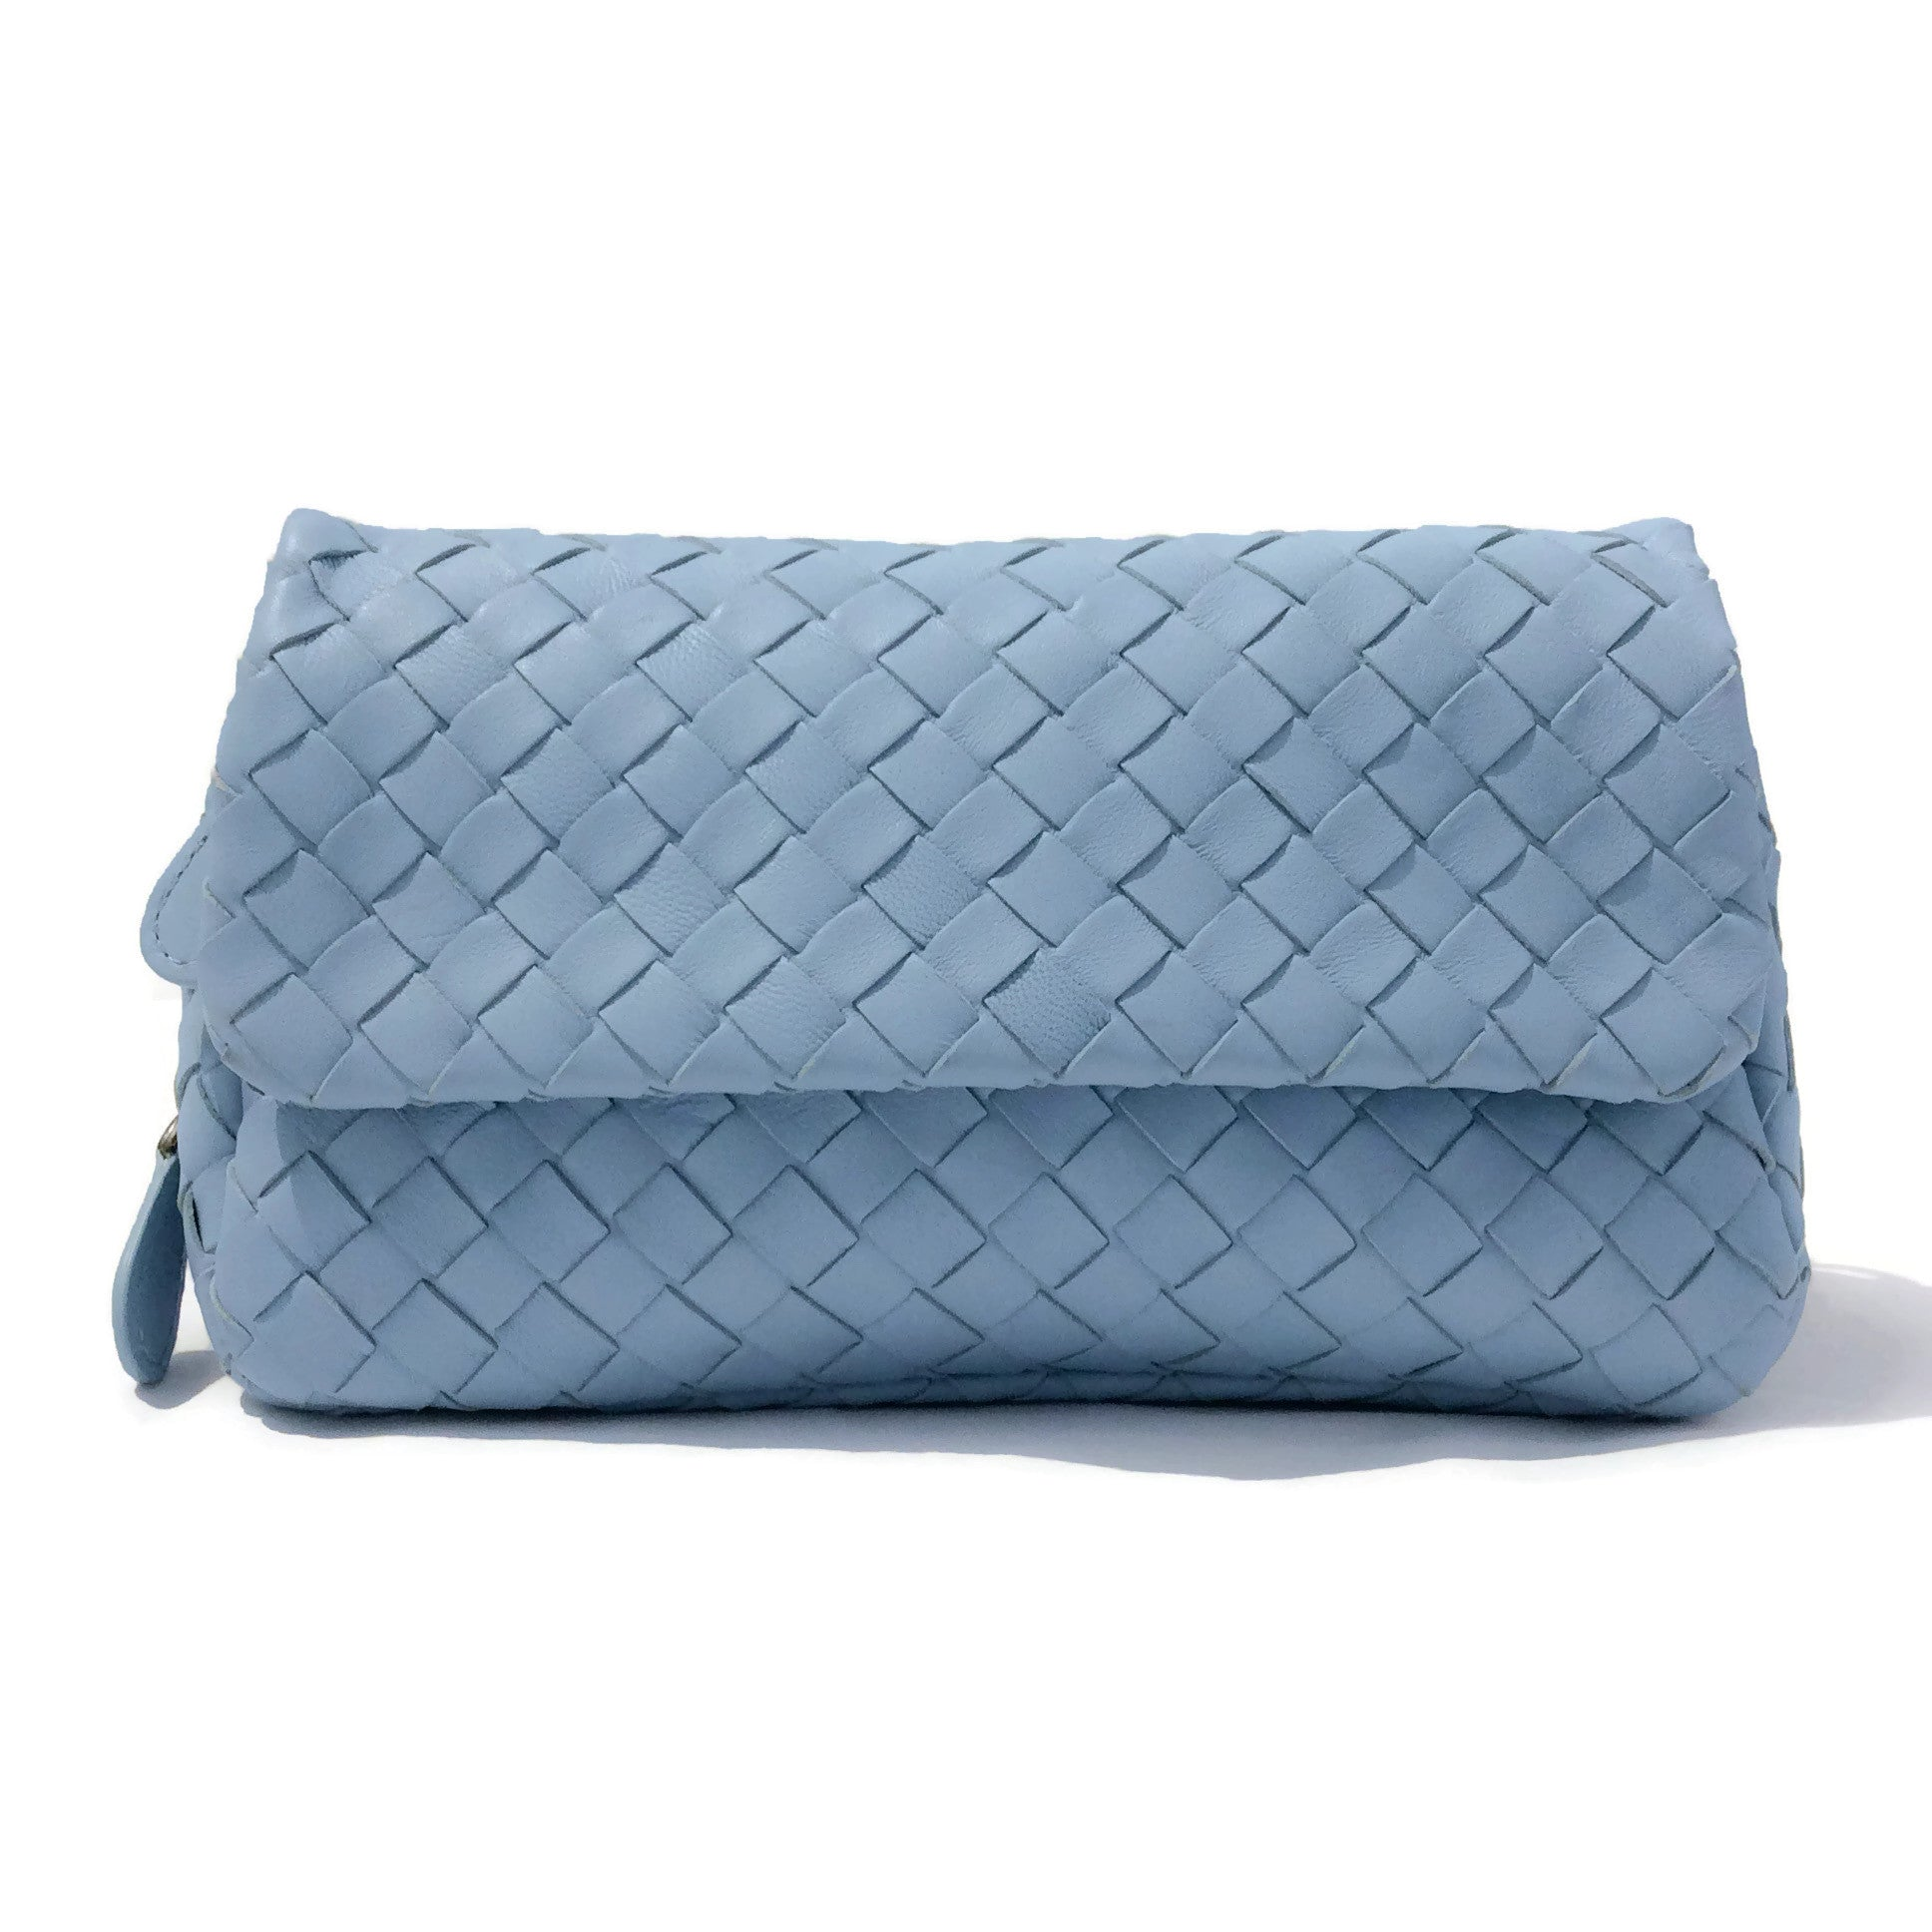 Bottega Veneta Light Blue Leather Small Woven Clutch / Cross Body Bag